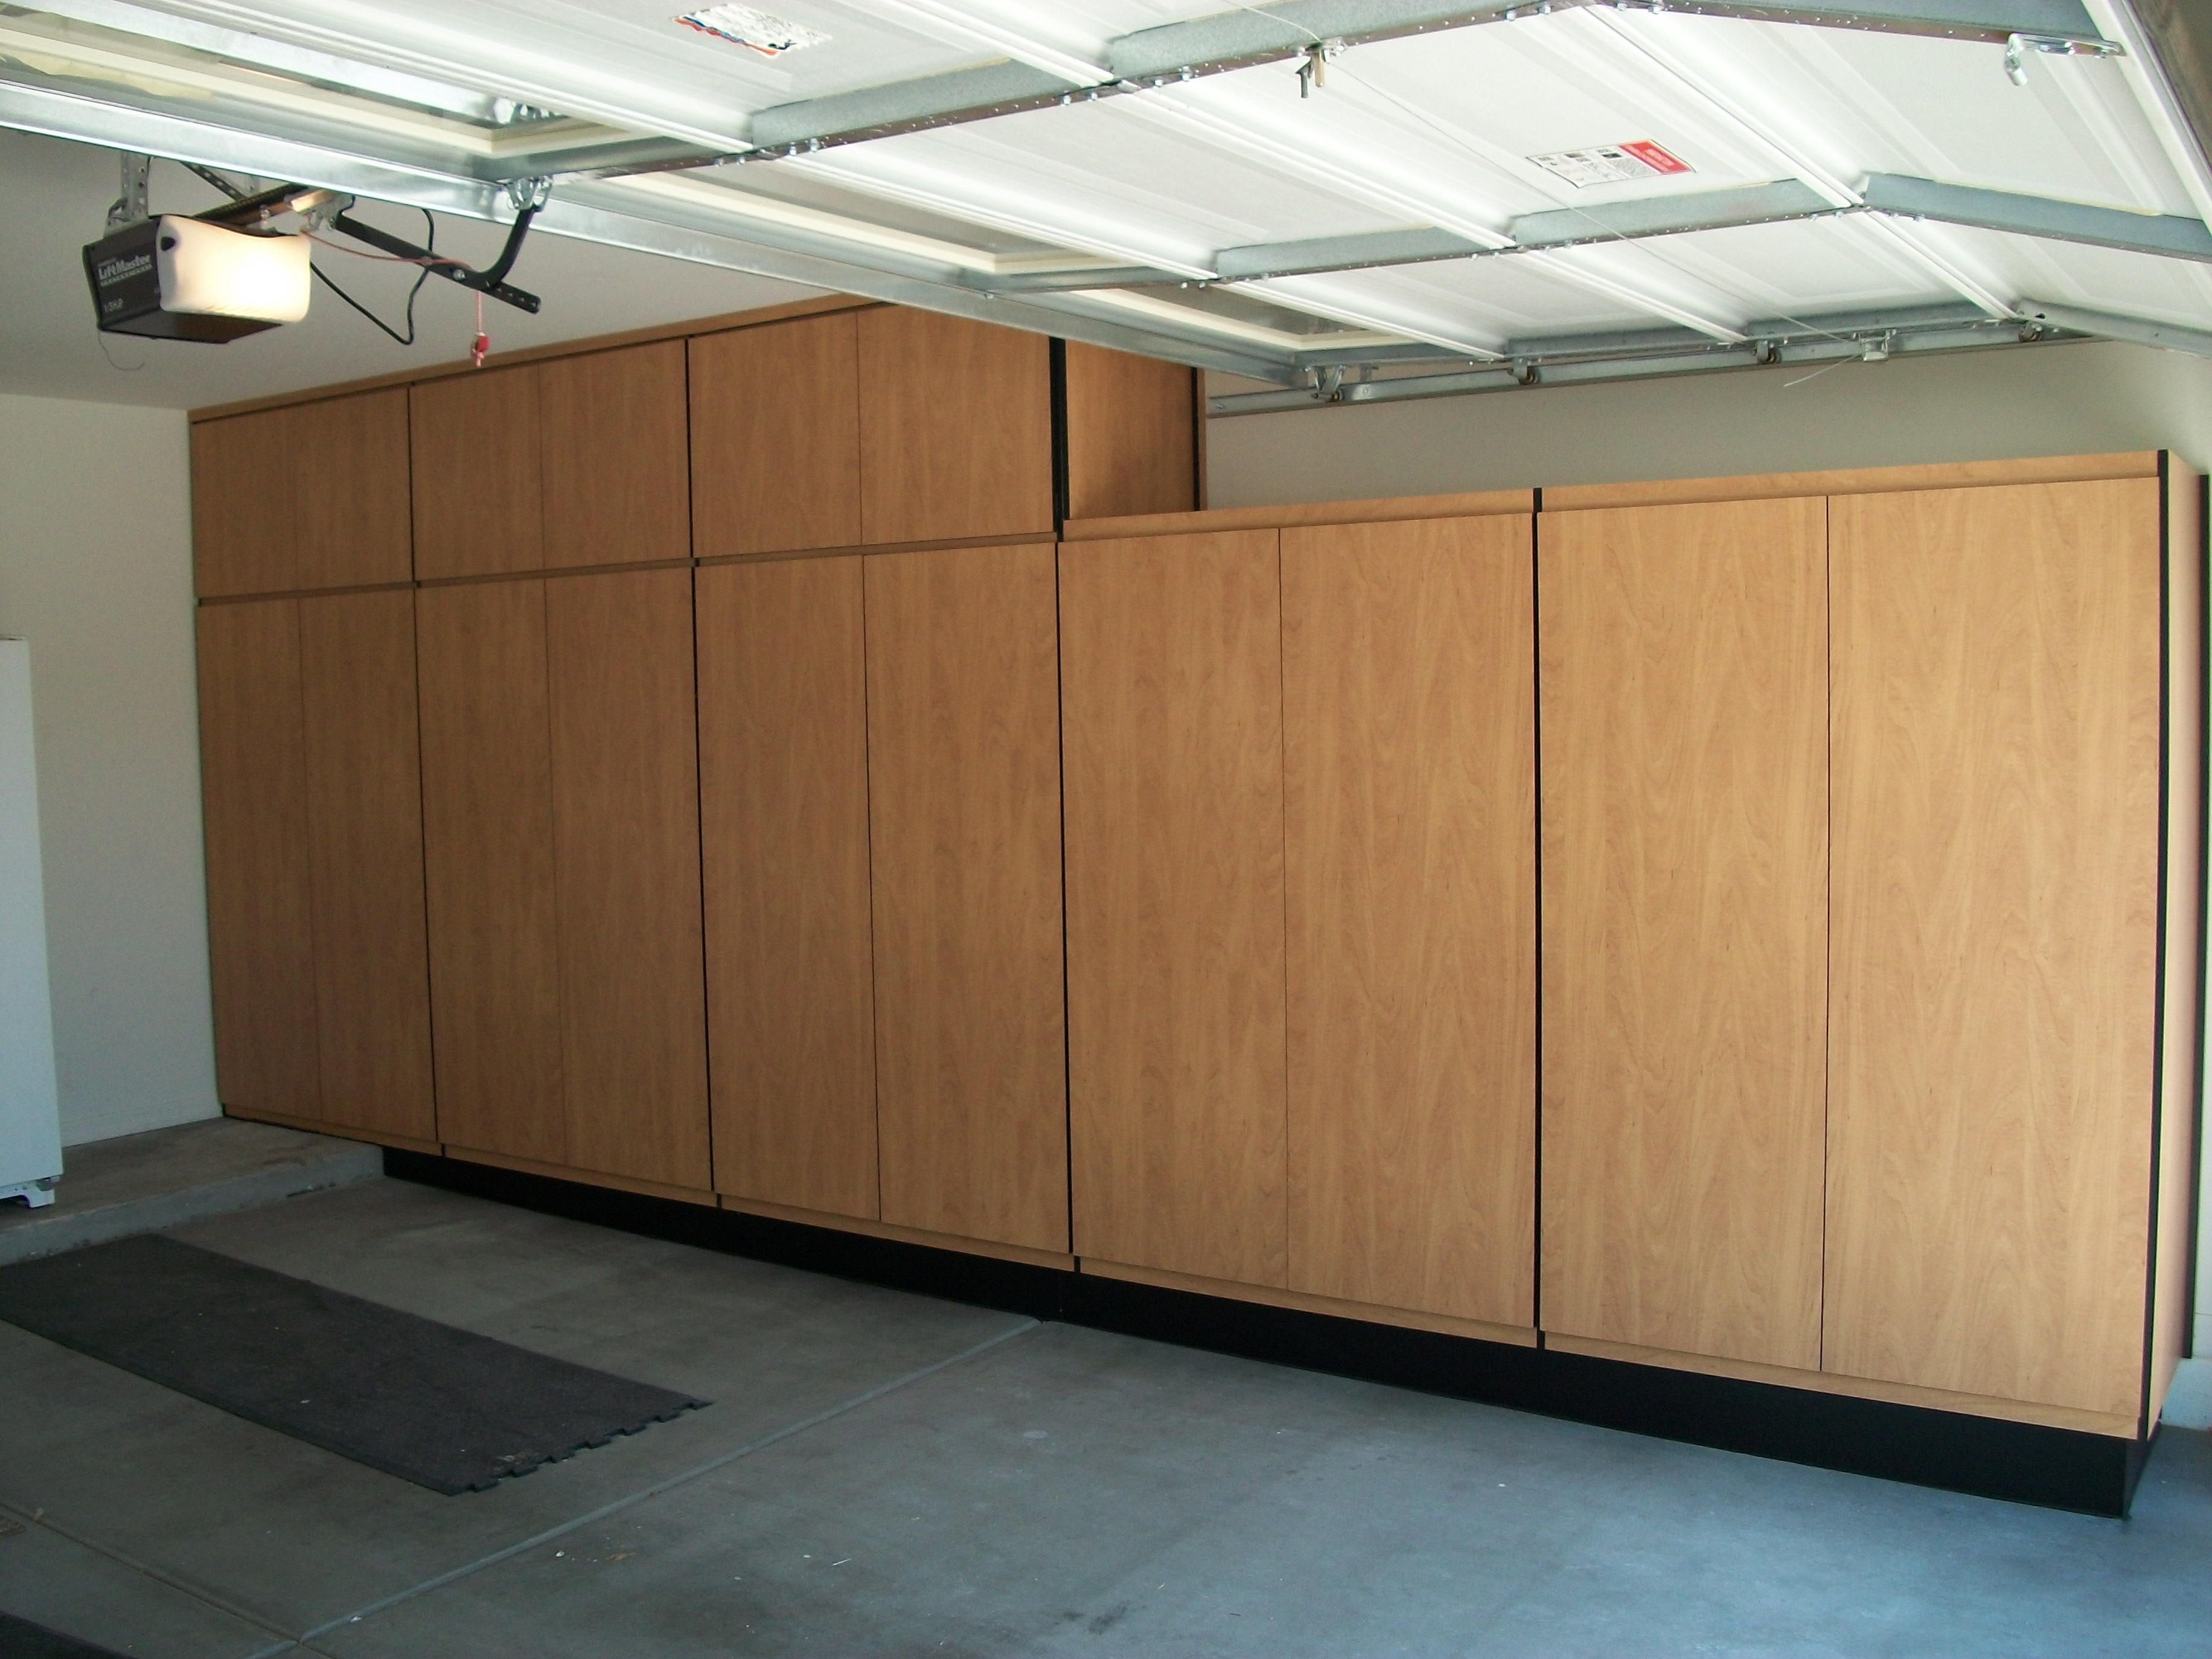 Diy Storage Cabinets For Garage How To Build Garage Cabinets